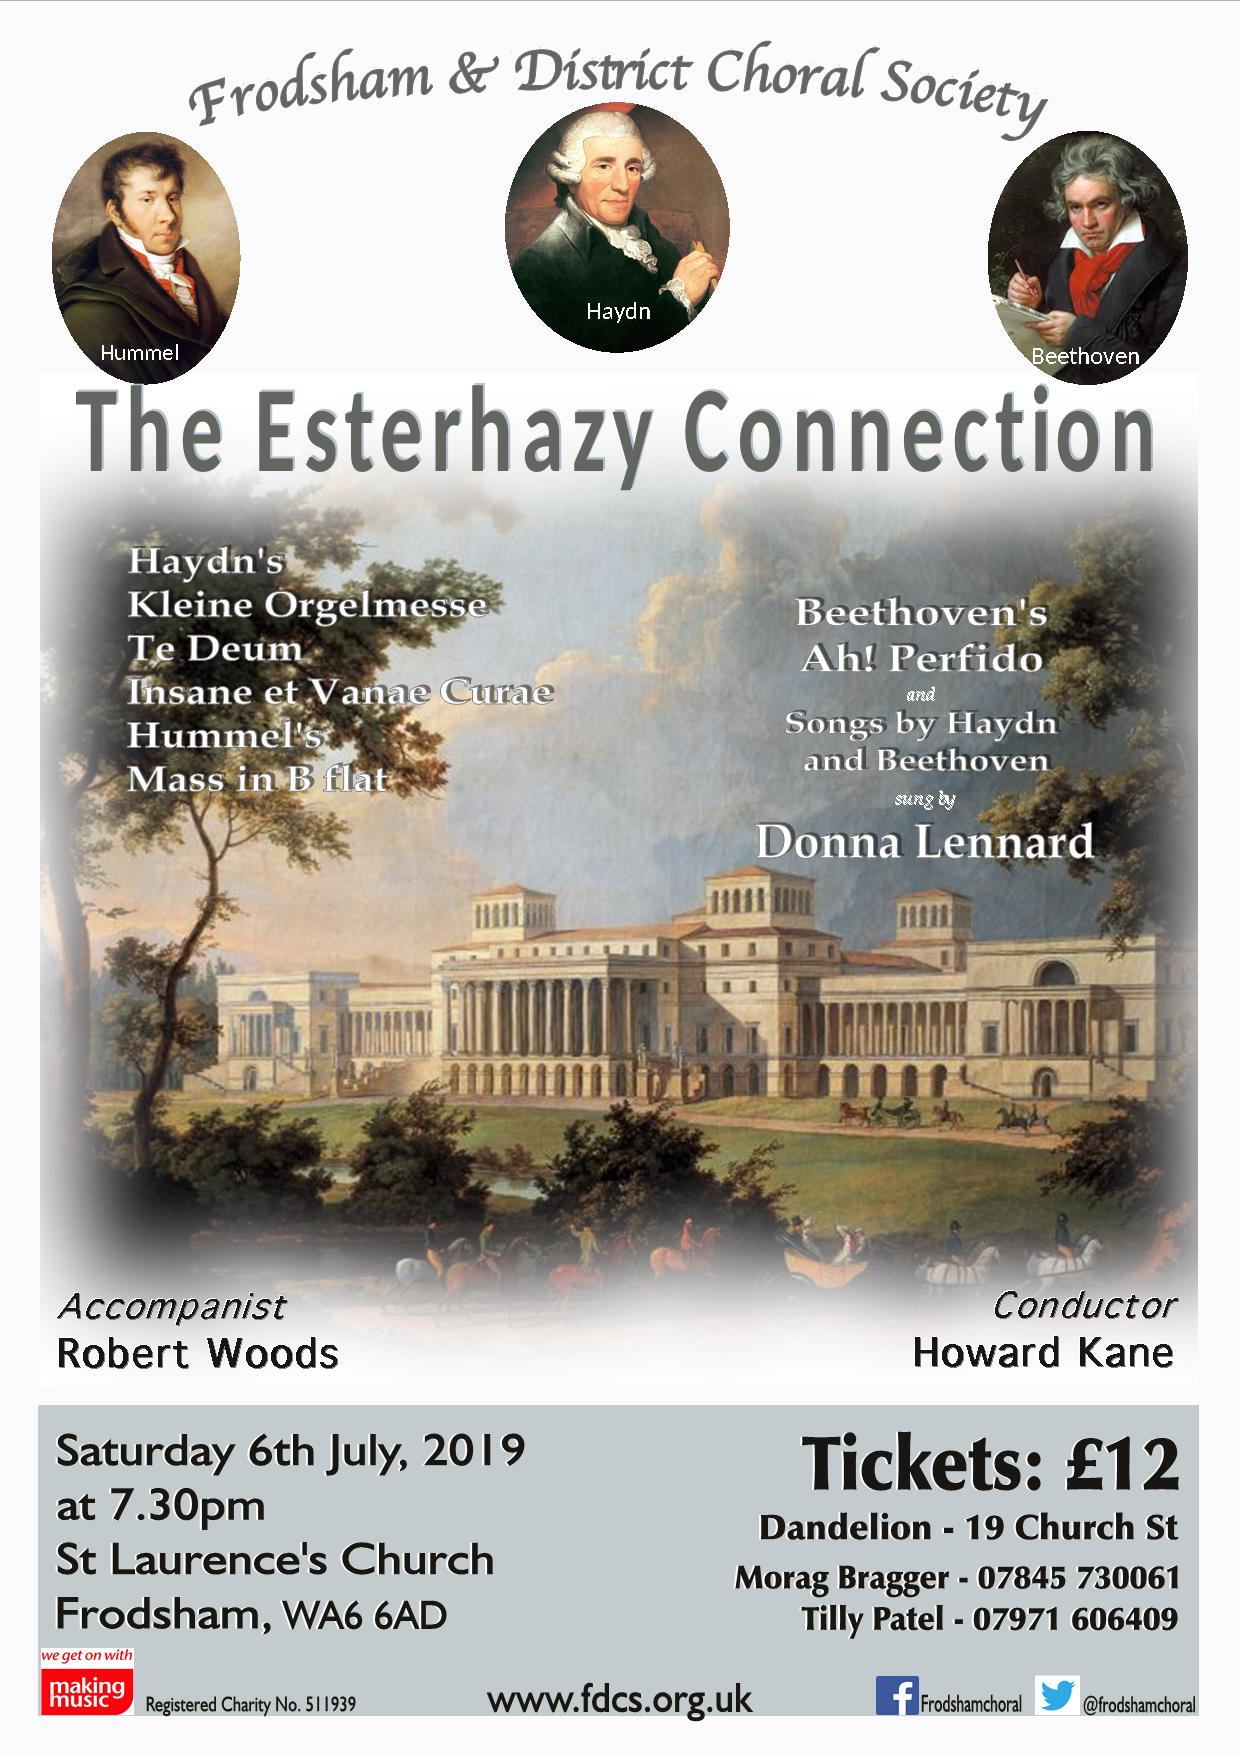 The Esterhazy Connection